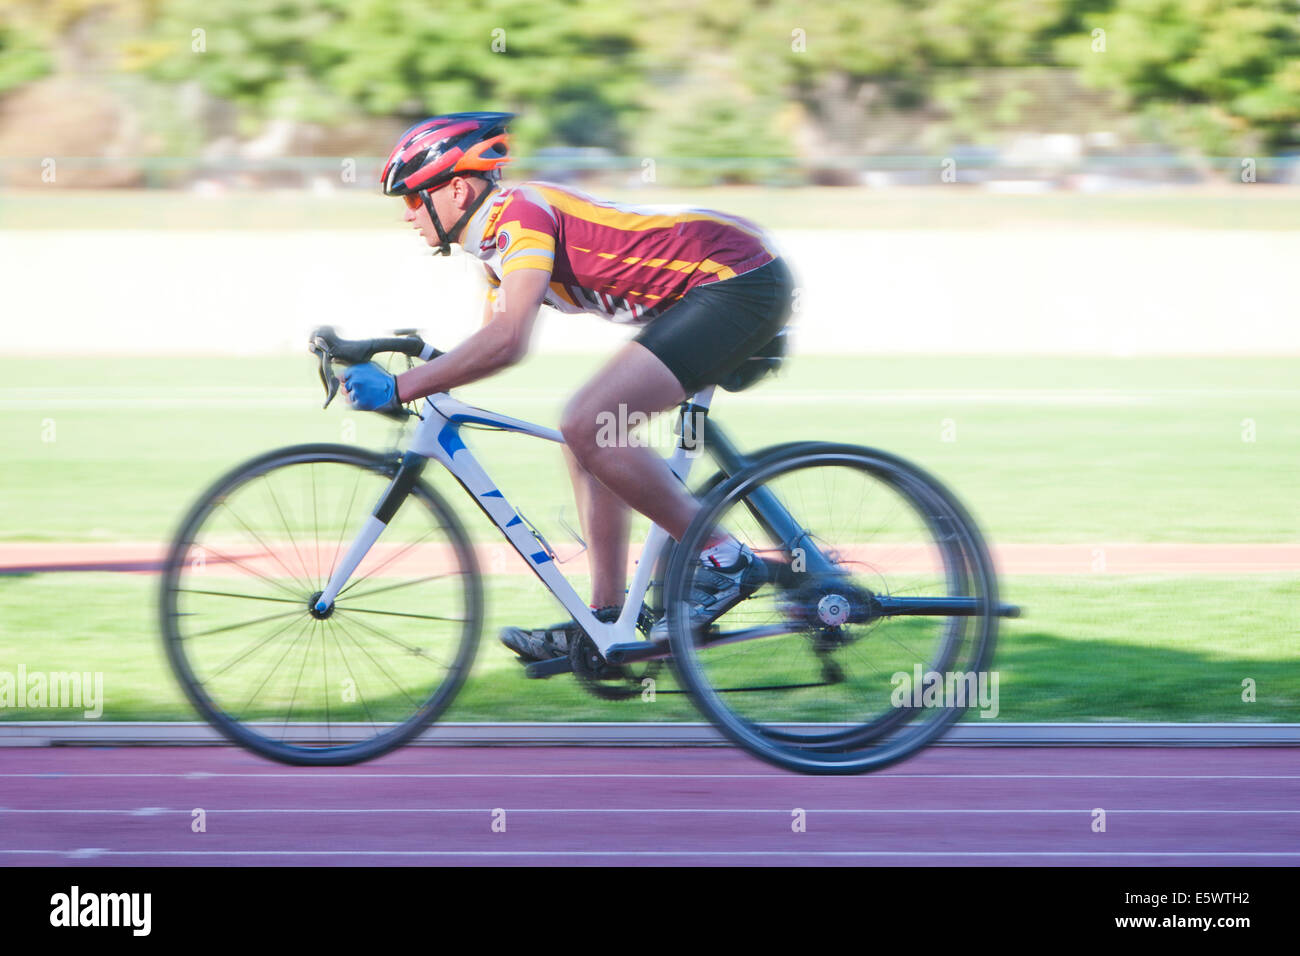 Cyclist in para-athletic training - Stock Image